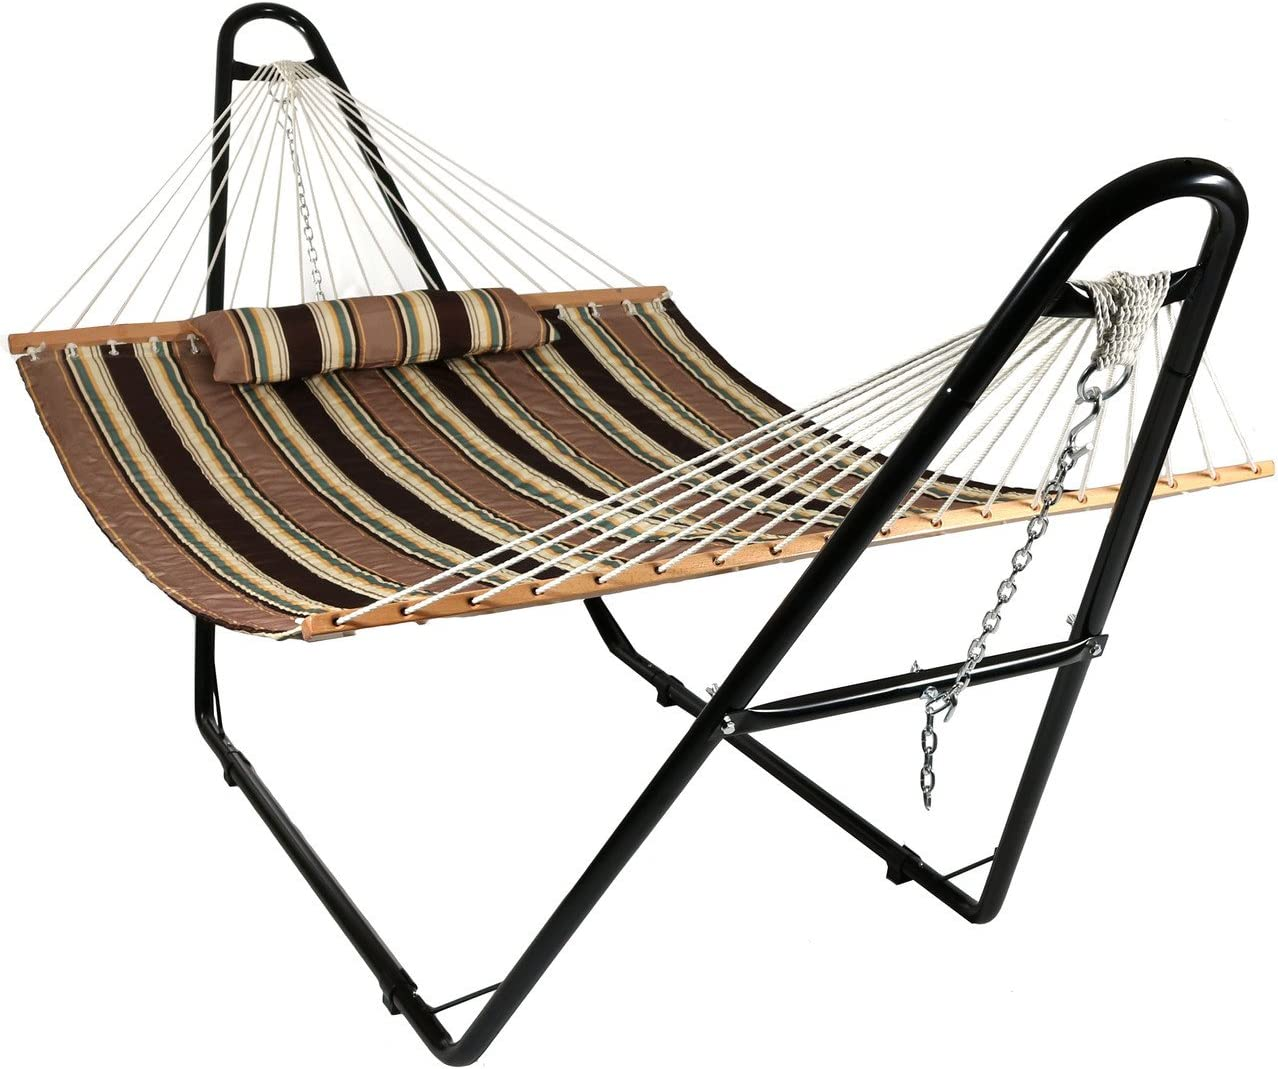 Sunnydaze Double Quilted Fabric Hammock